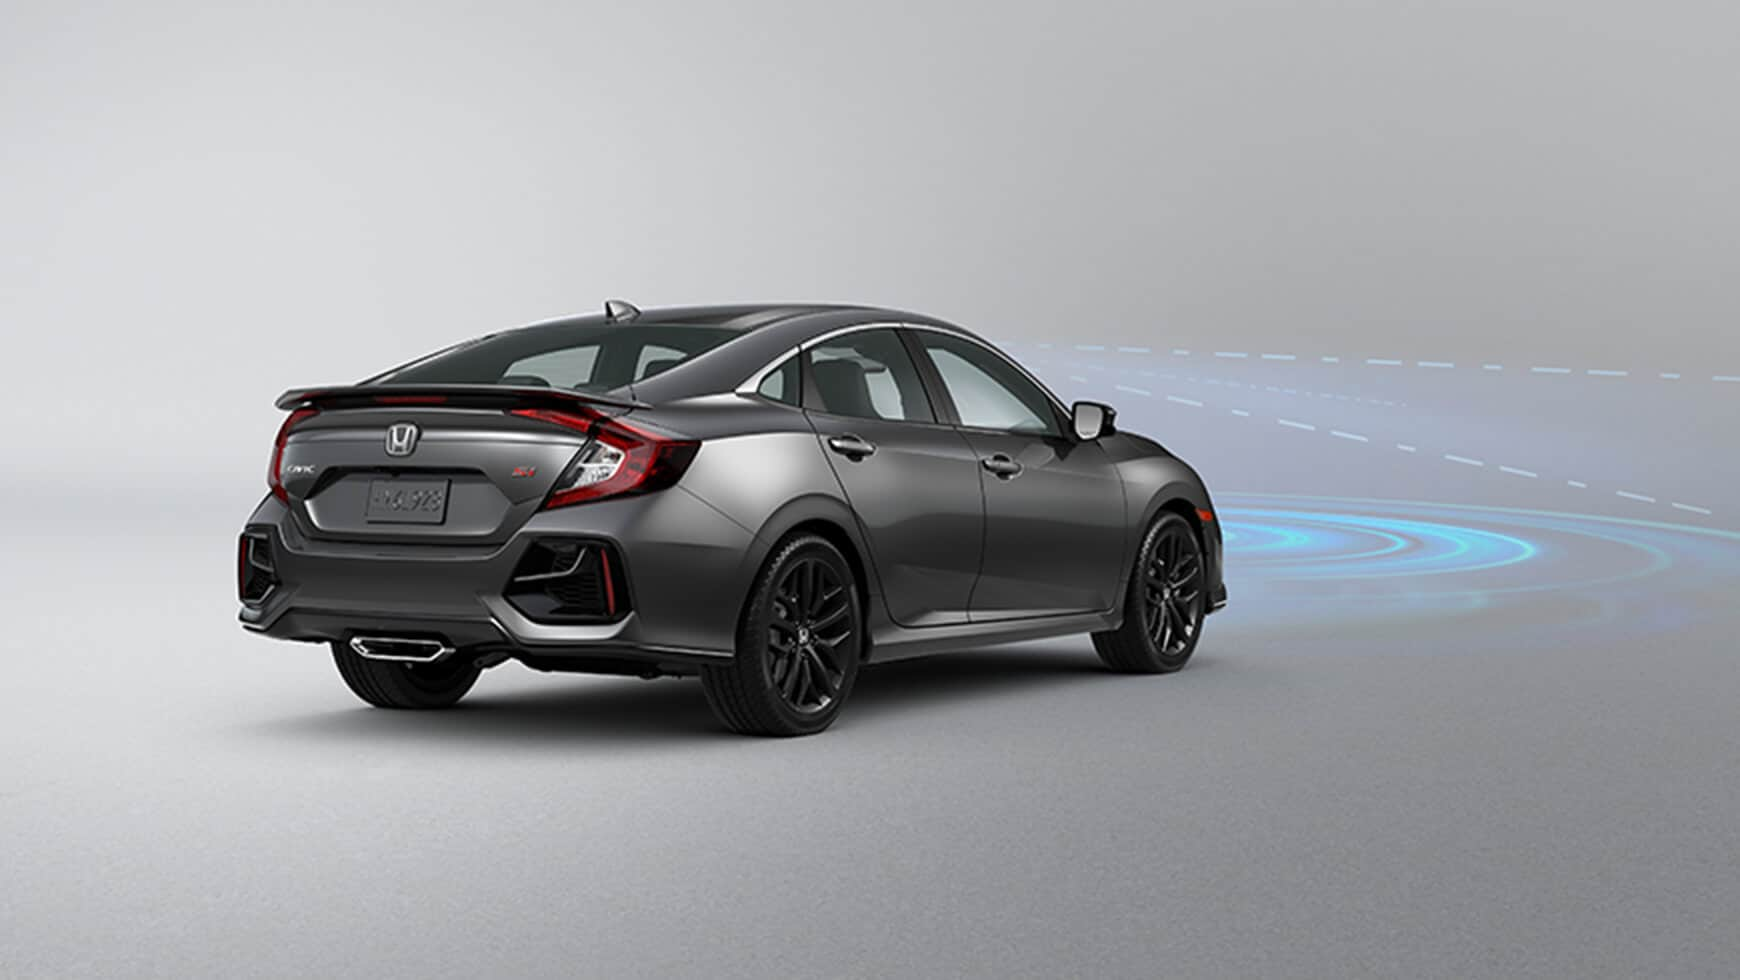 Rear 7/8 driver's side view of 2020 Honda Civic Si Sedan in Modern Steel Metallic demonstrating Collision Mitigation Braking System™ (CMBS™).